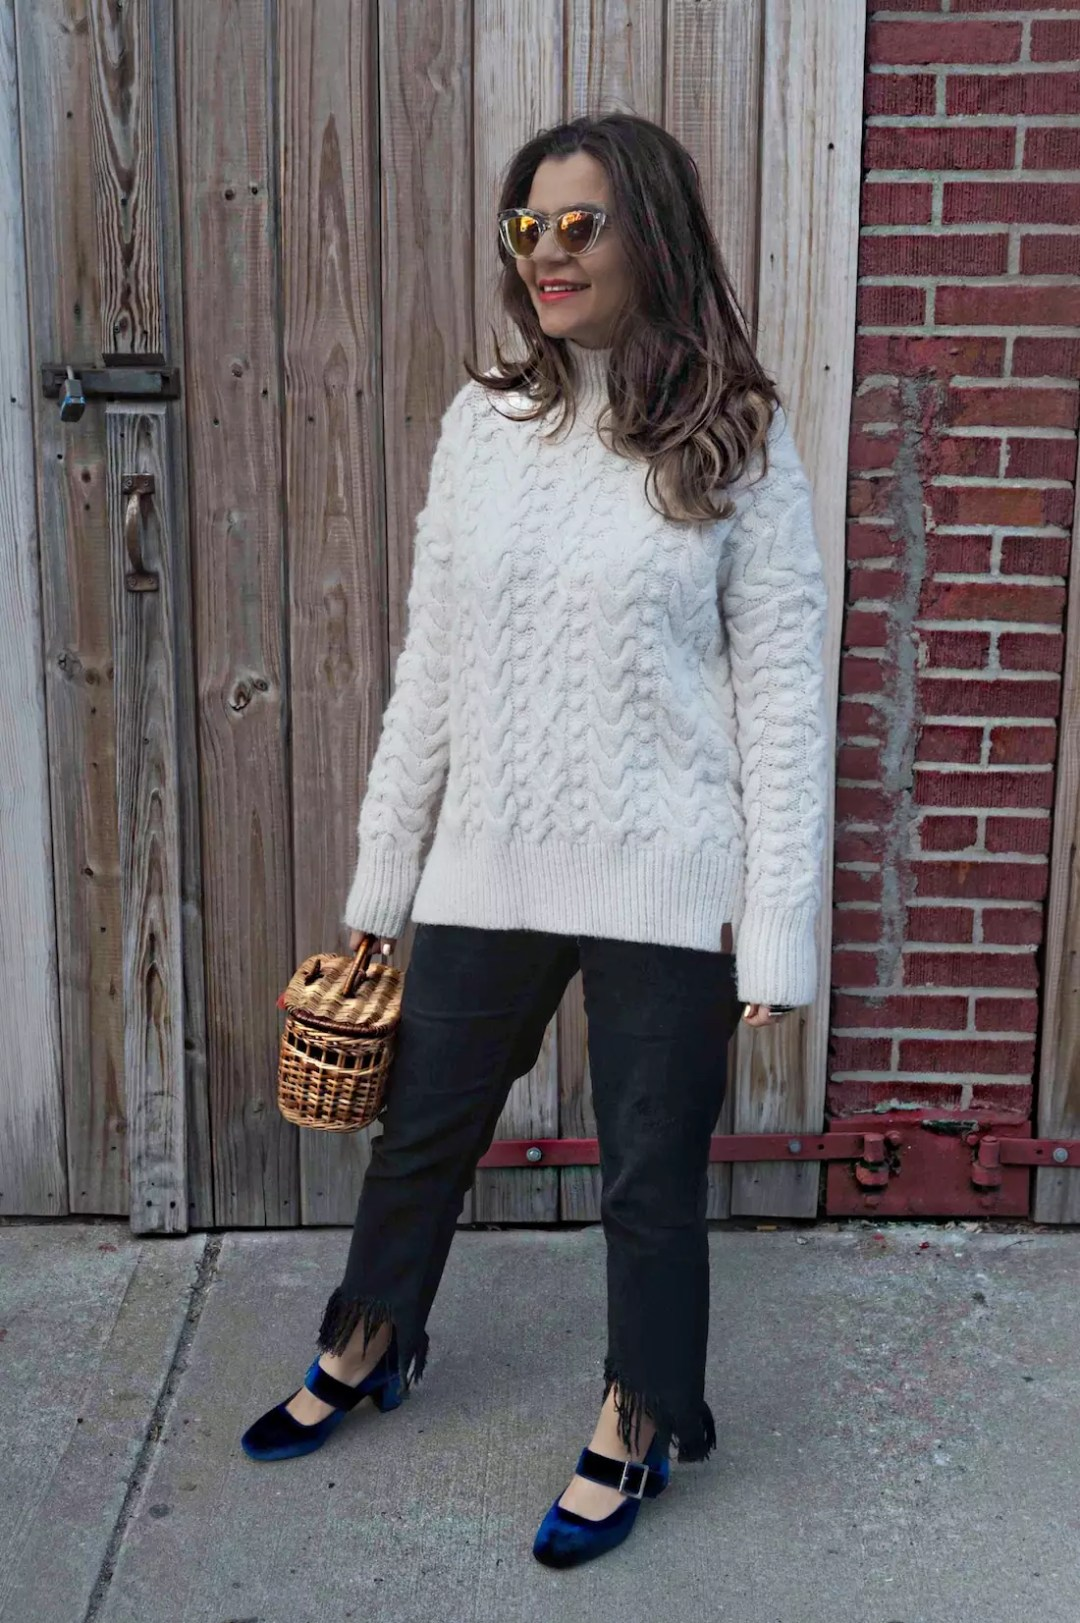 straw-bag-velvet-mary-jane-shoes-oversized-sweater-alley-girl-fashion-technology-blogger-betul-yildiz